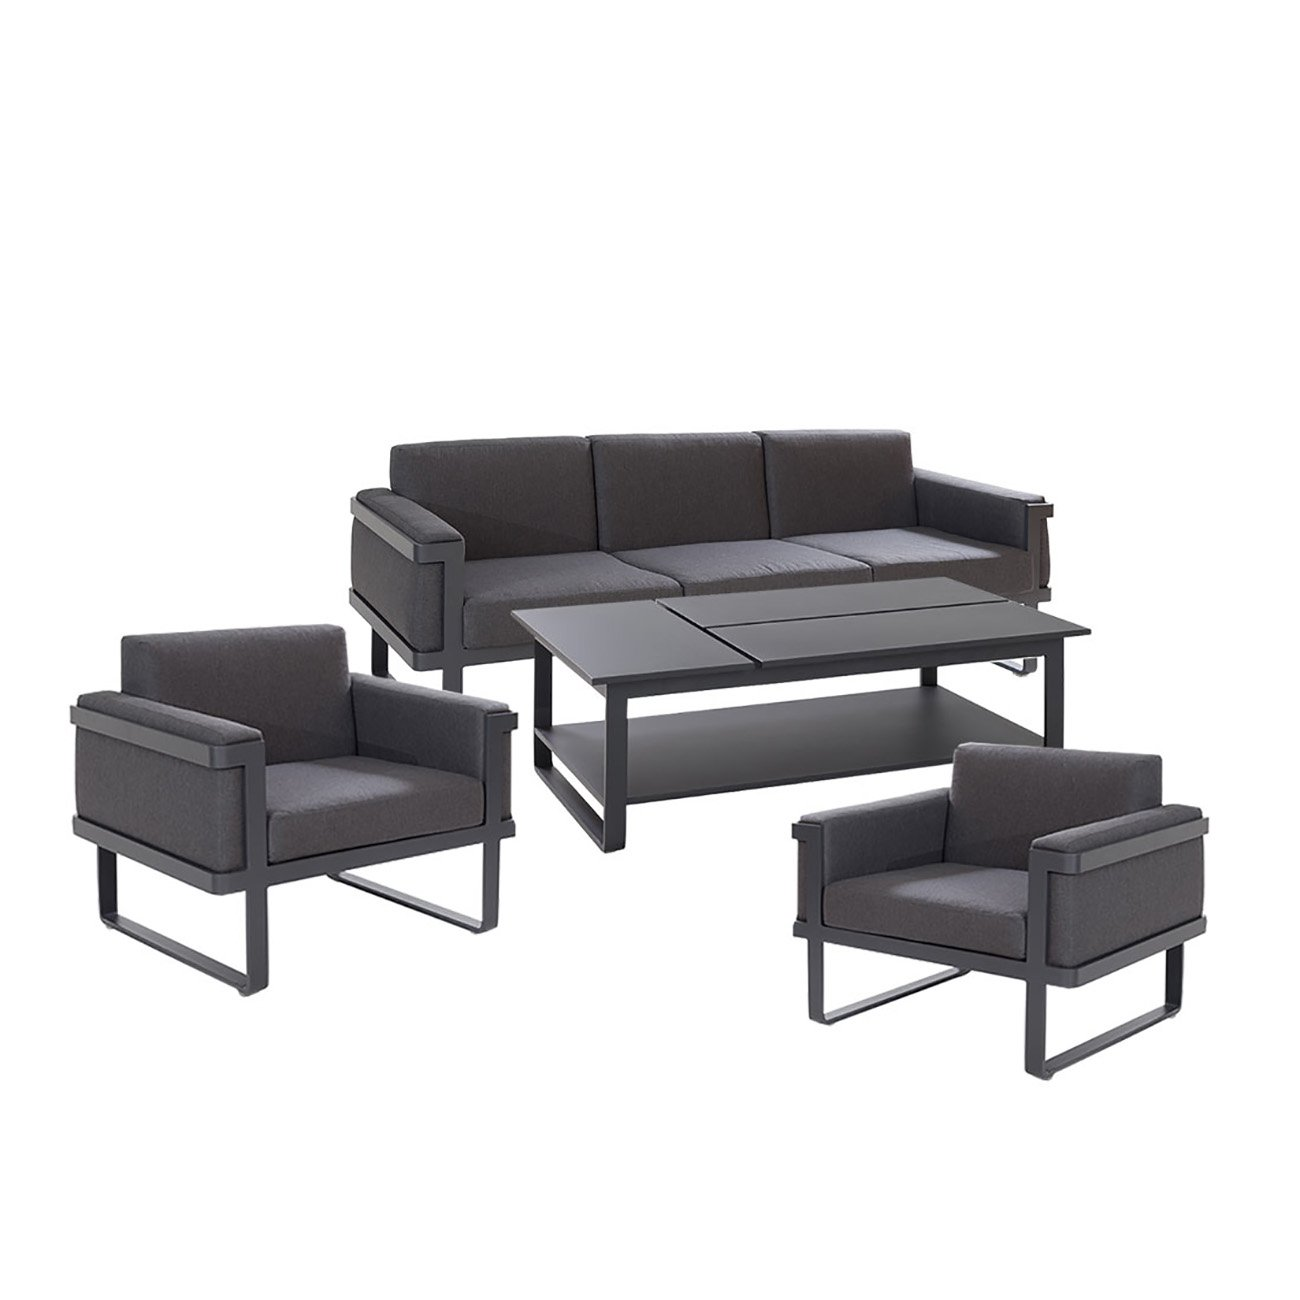 exklusive gartenm bel outliv triest loungem bel outdoor polyrattan gartenlounge loungegruppe. Black Bedroom Furniture Sets. Home Design Ideas